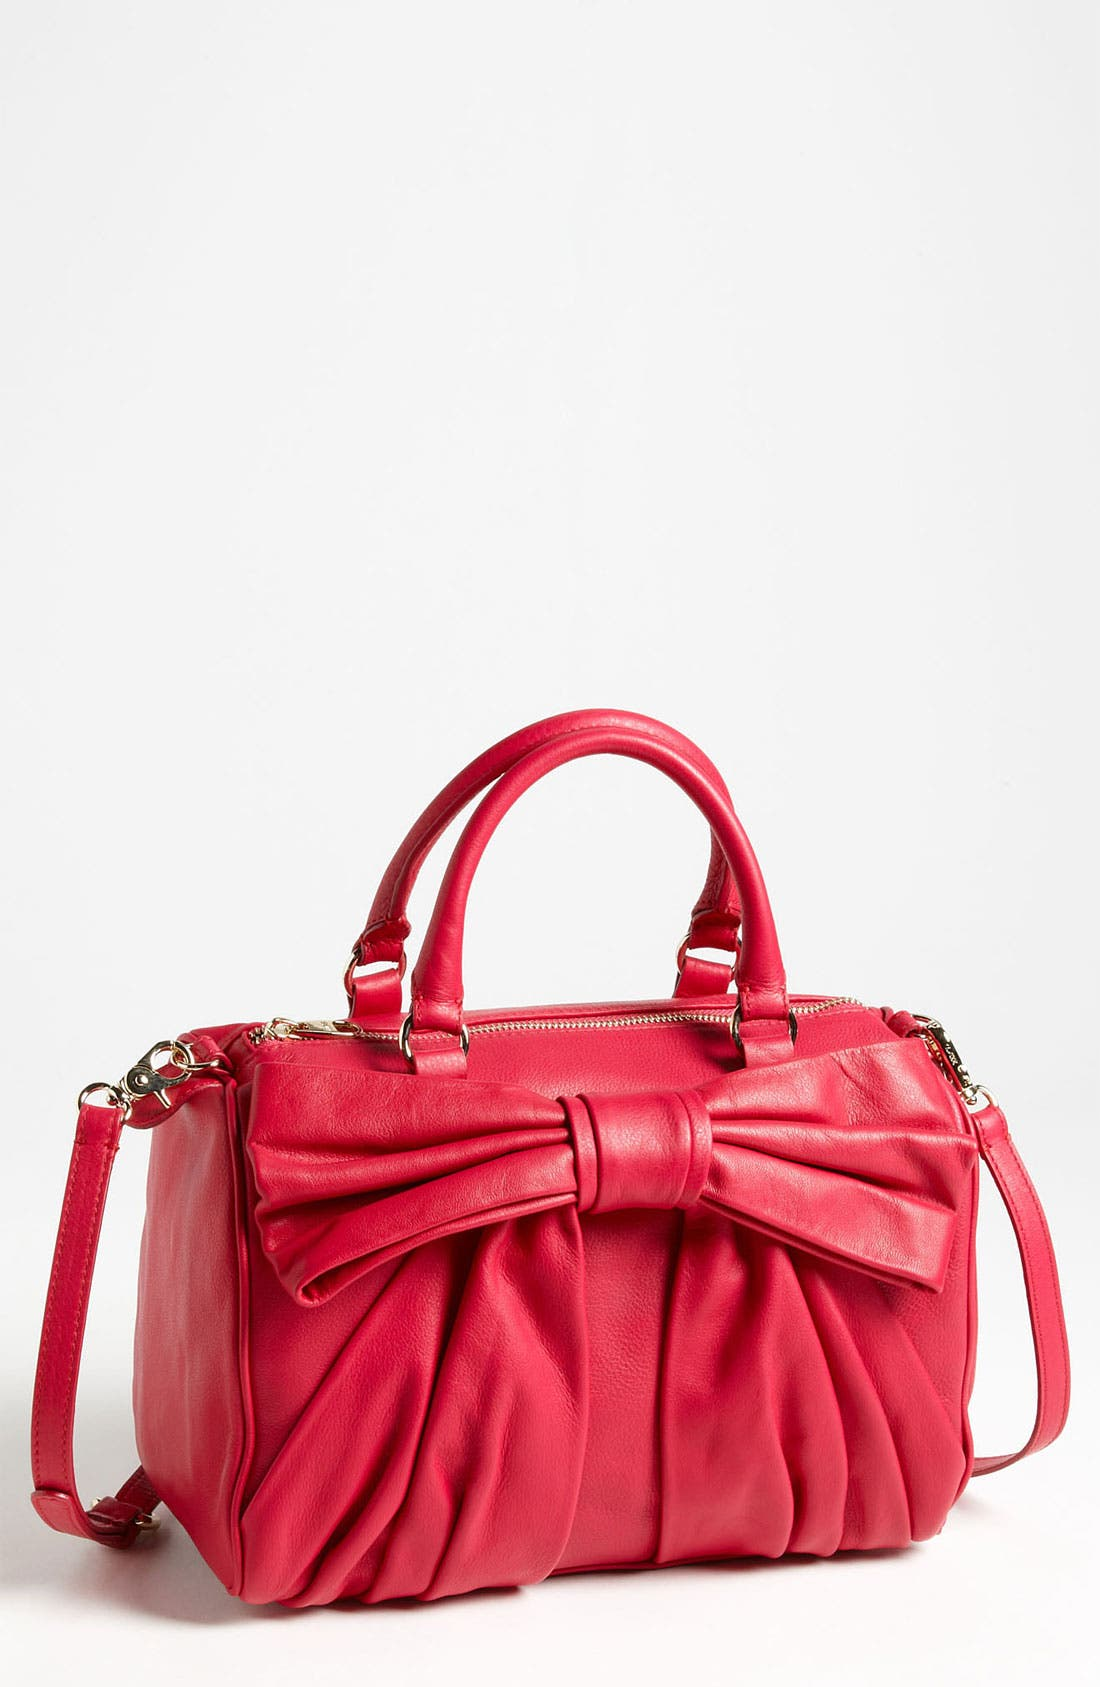 Alternate Image 1 Selected - RED Valentino 'Bow' Boston Bag